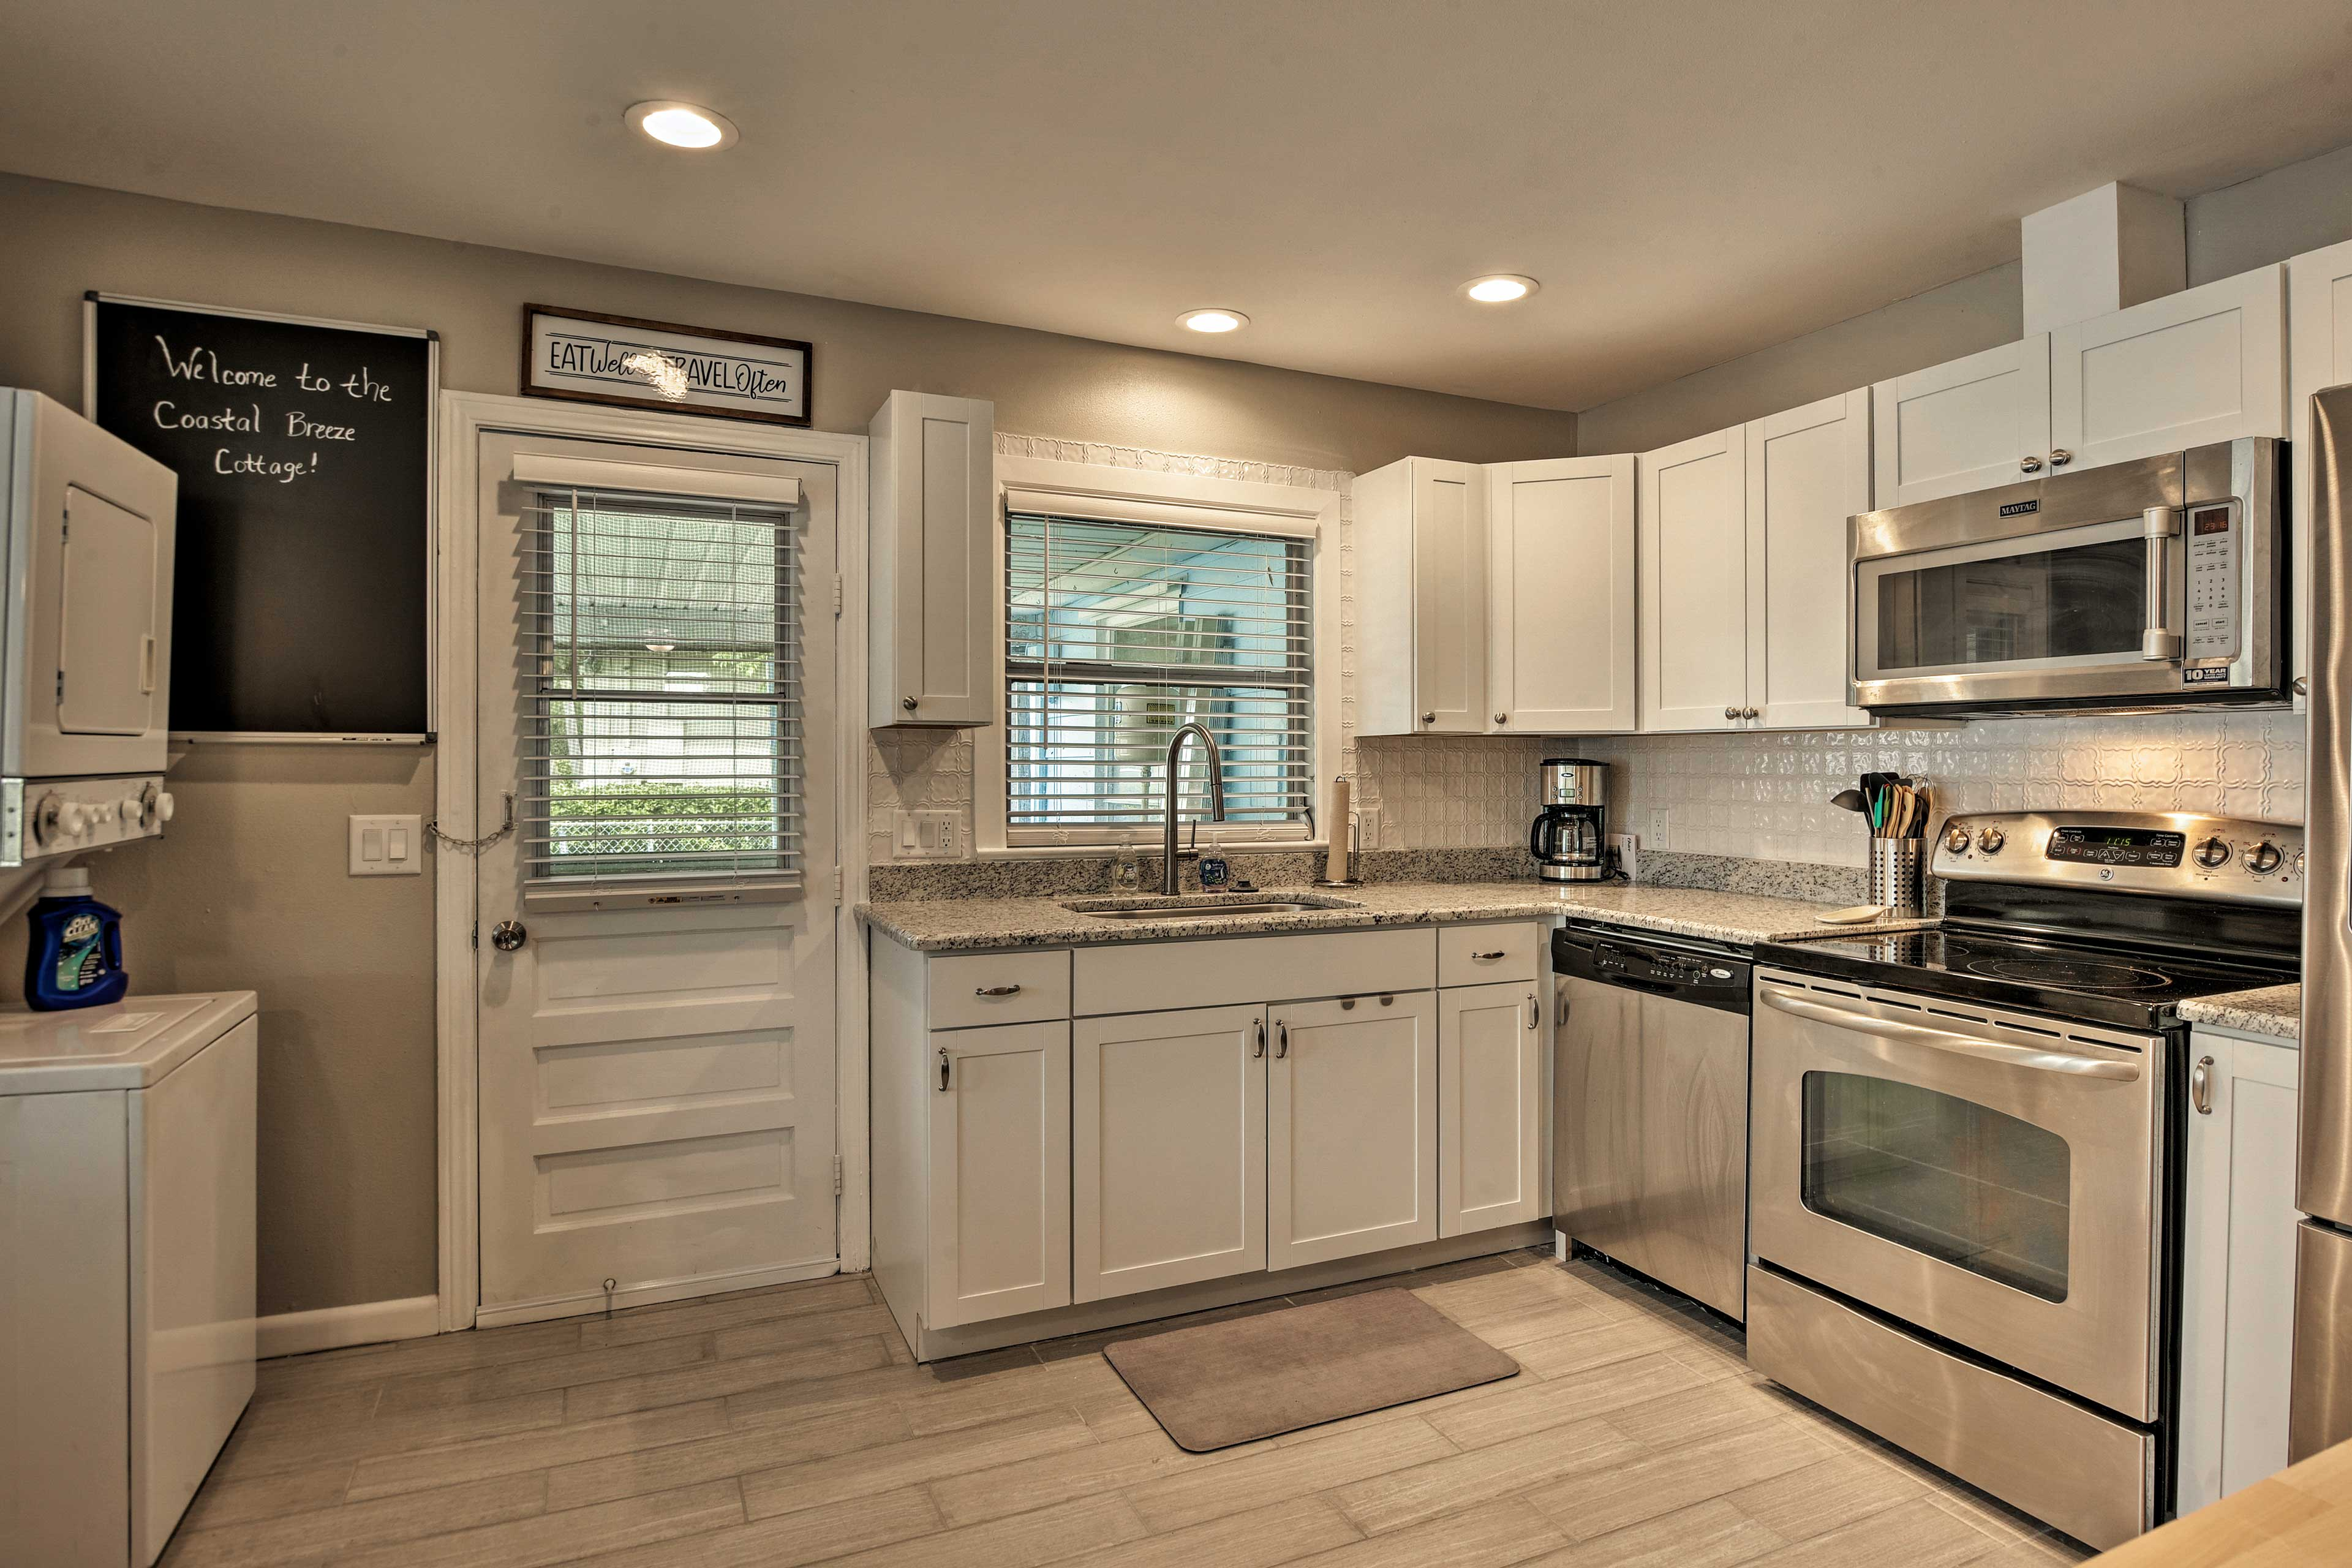 The 'Coastal Breeze Cottage' also boasts a bright, fully-equipped kitchen.